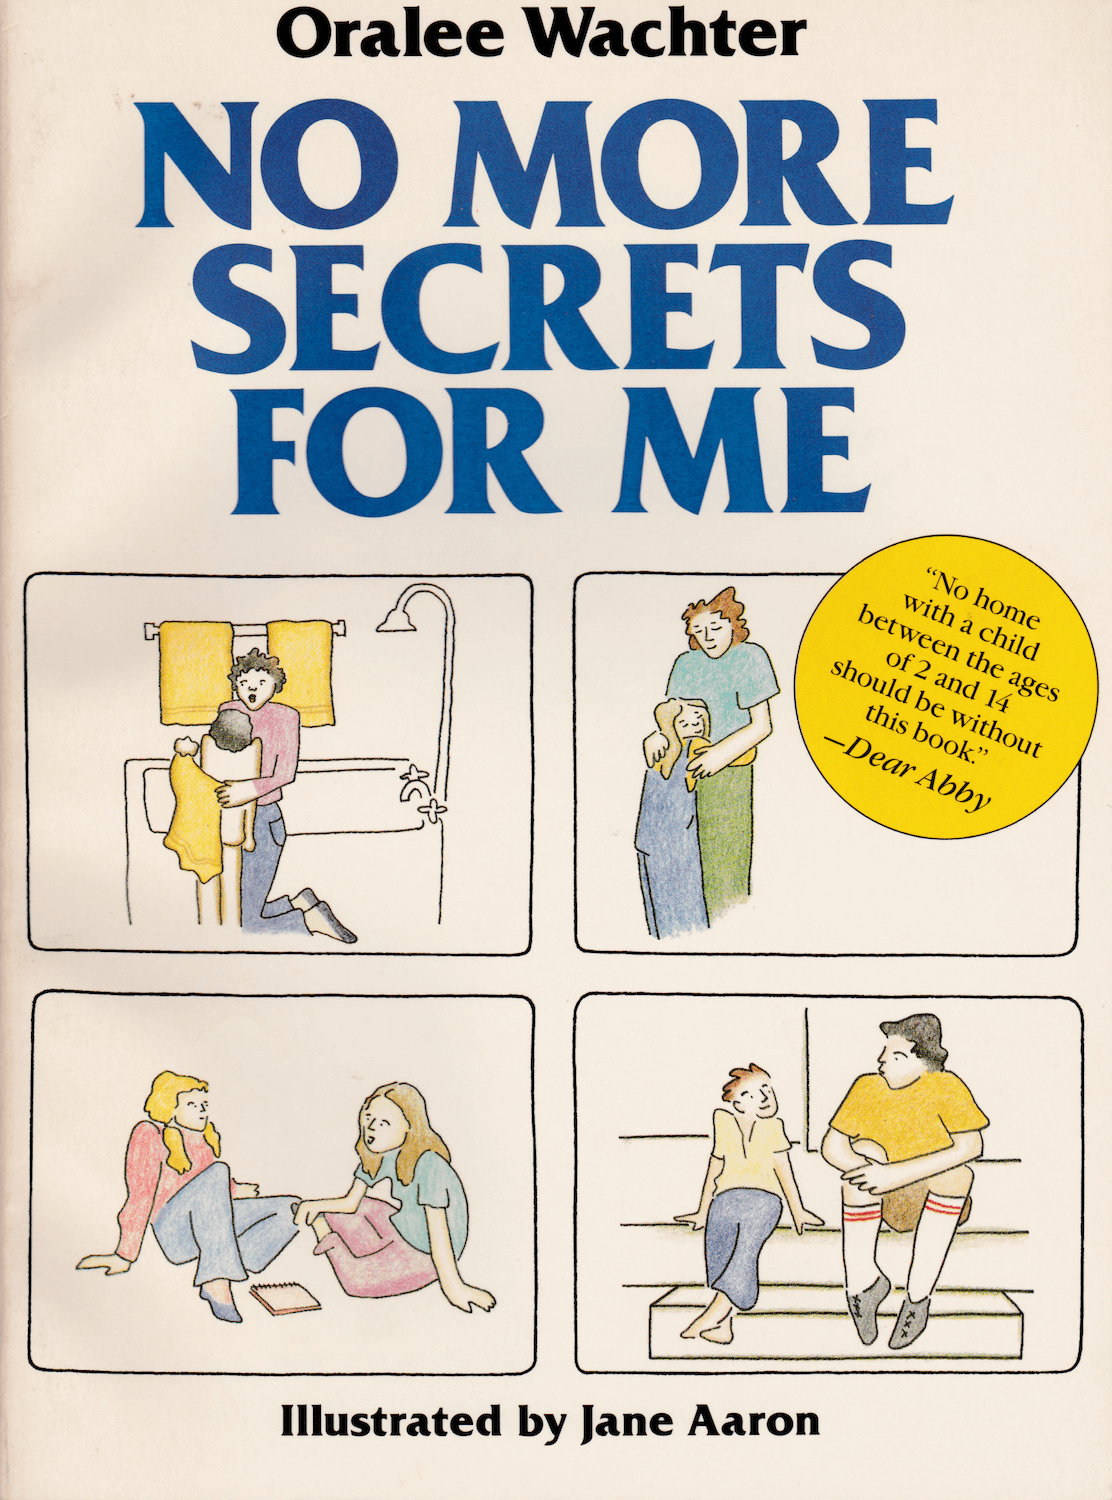 """No More Secrets for Me"" by Oralee Wachter, with Illustrations by Jane Aaron"